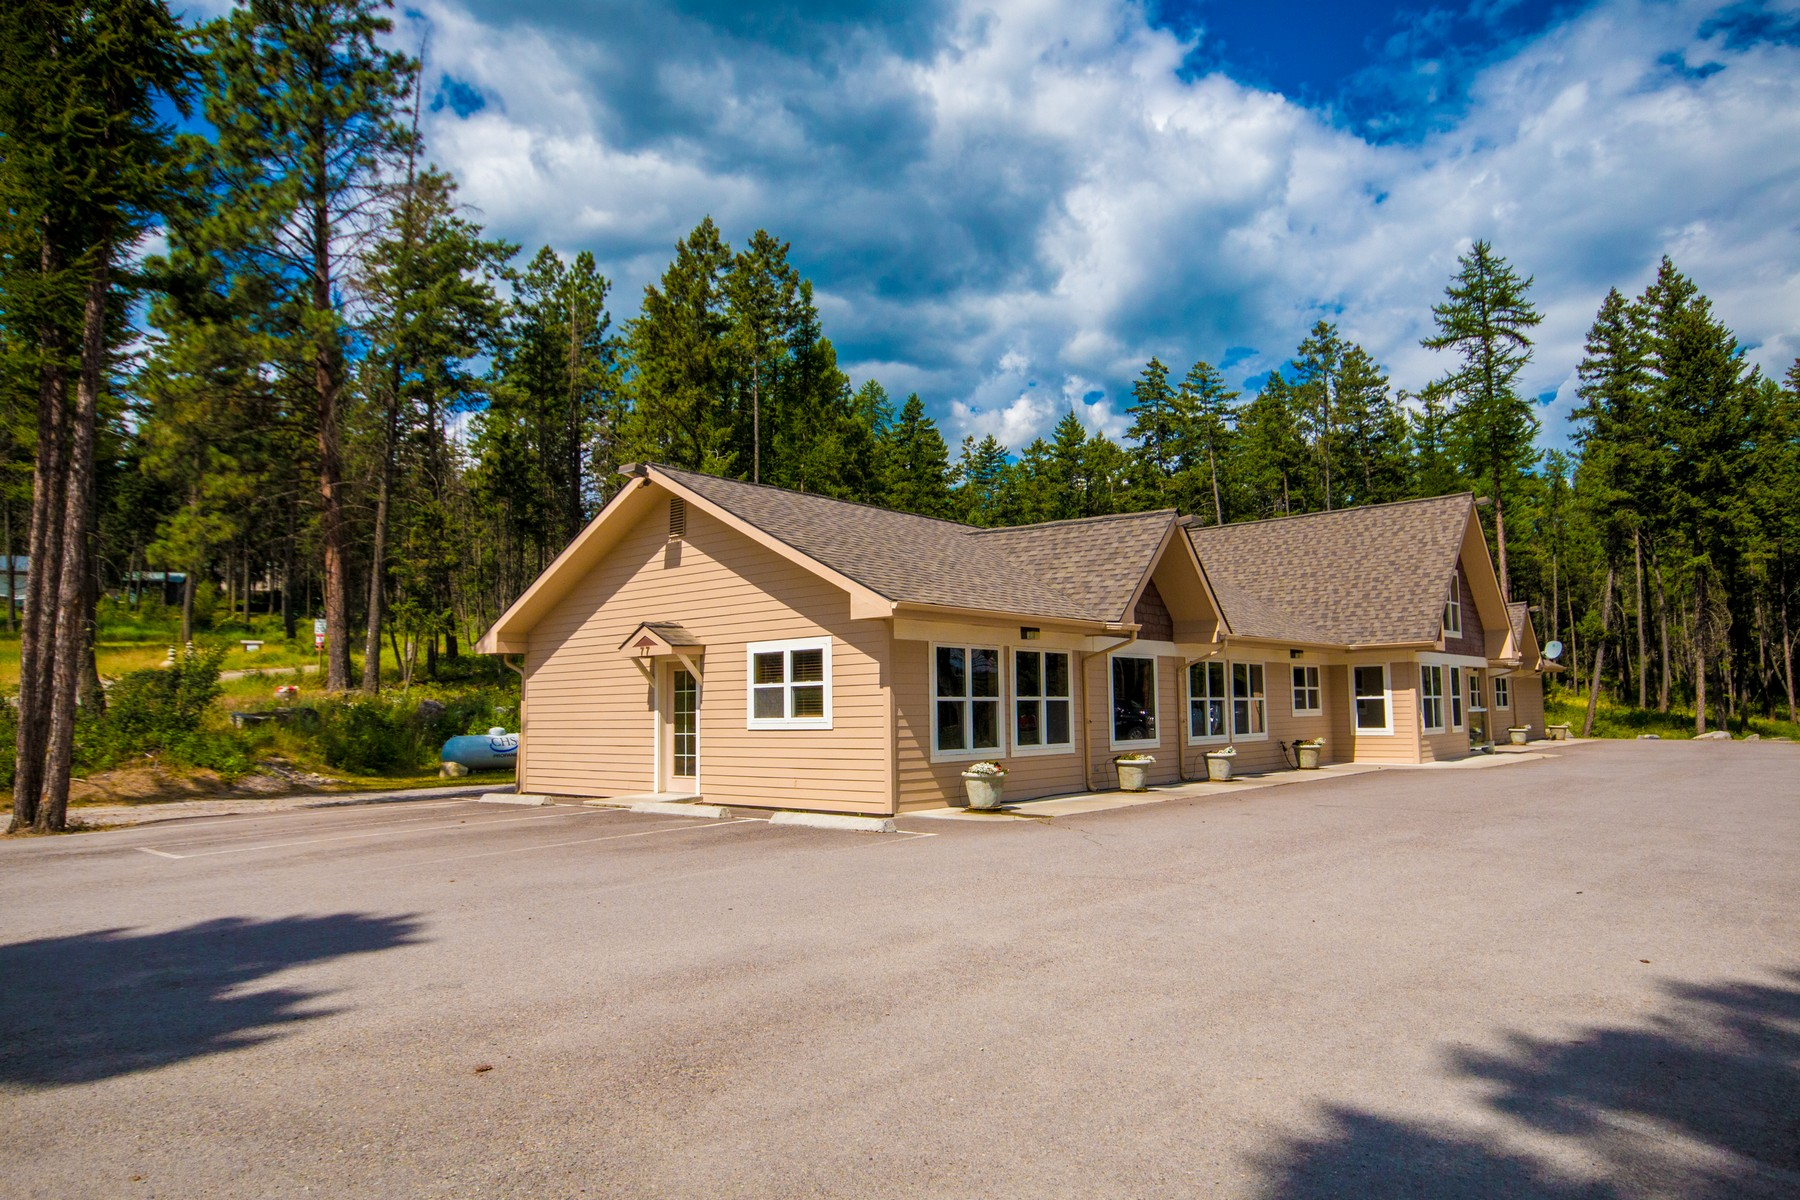 Additional photo for property listing at 77 Deer Creek Road , Somers, MT 59932 77  Deer Creek Rd Somers, Montana 59932 United States